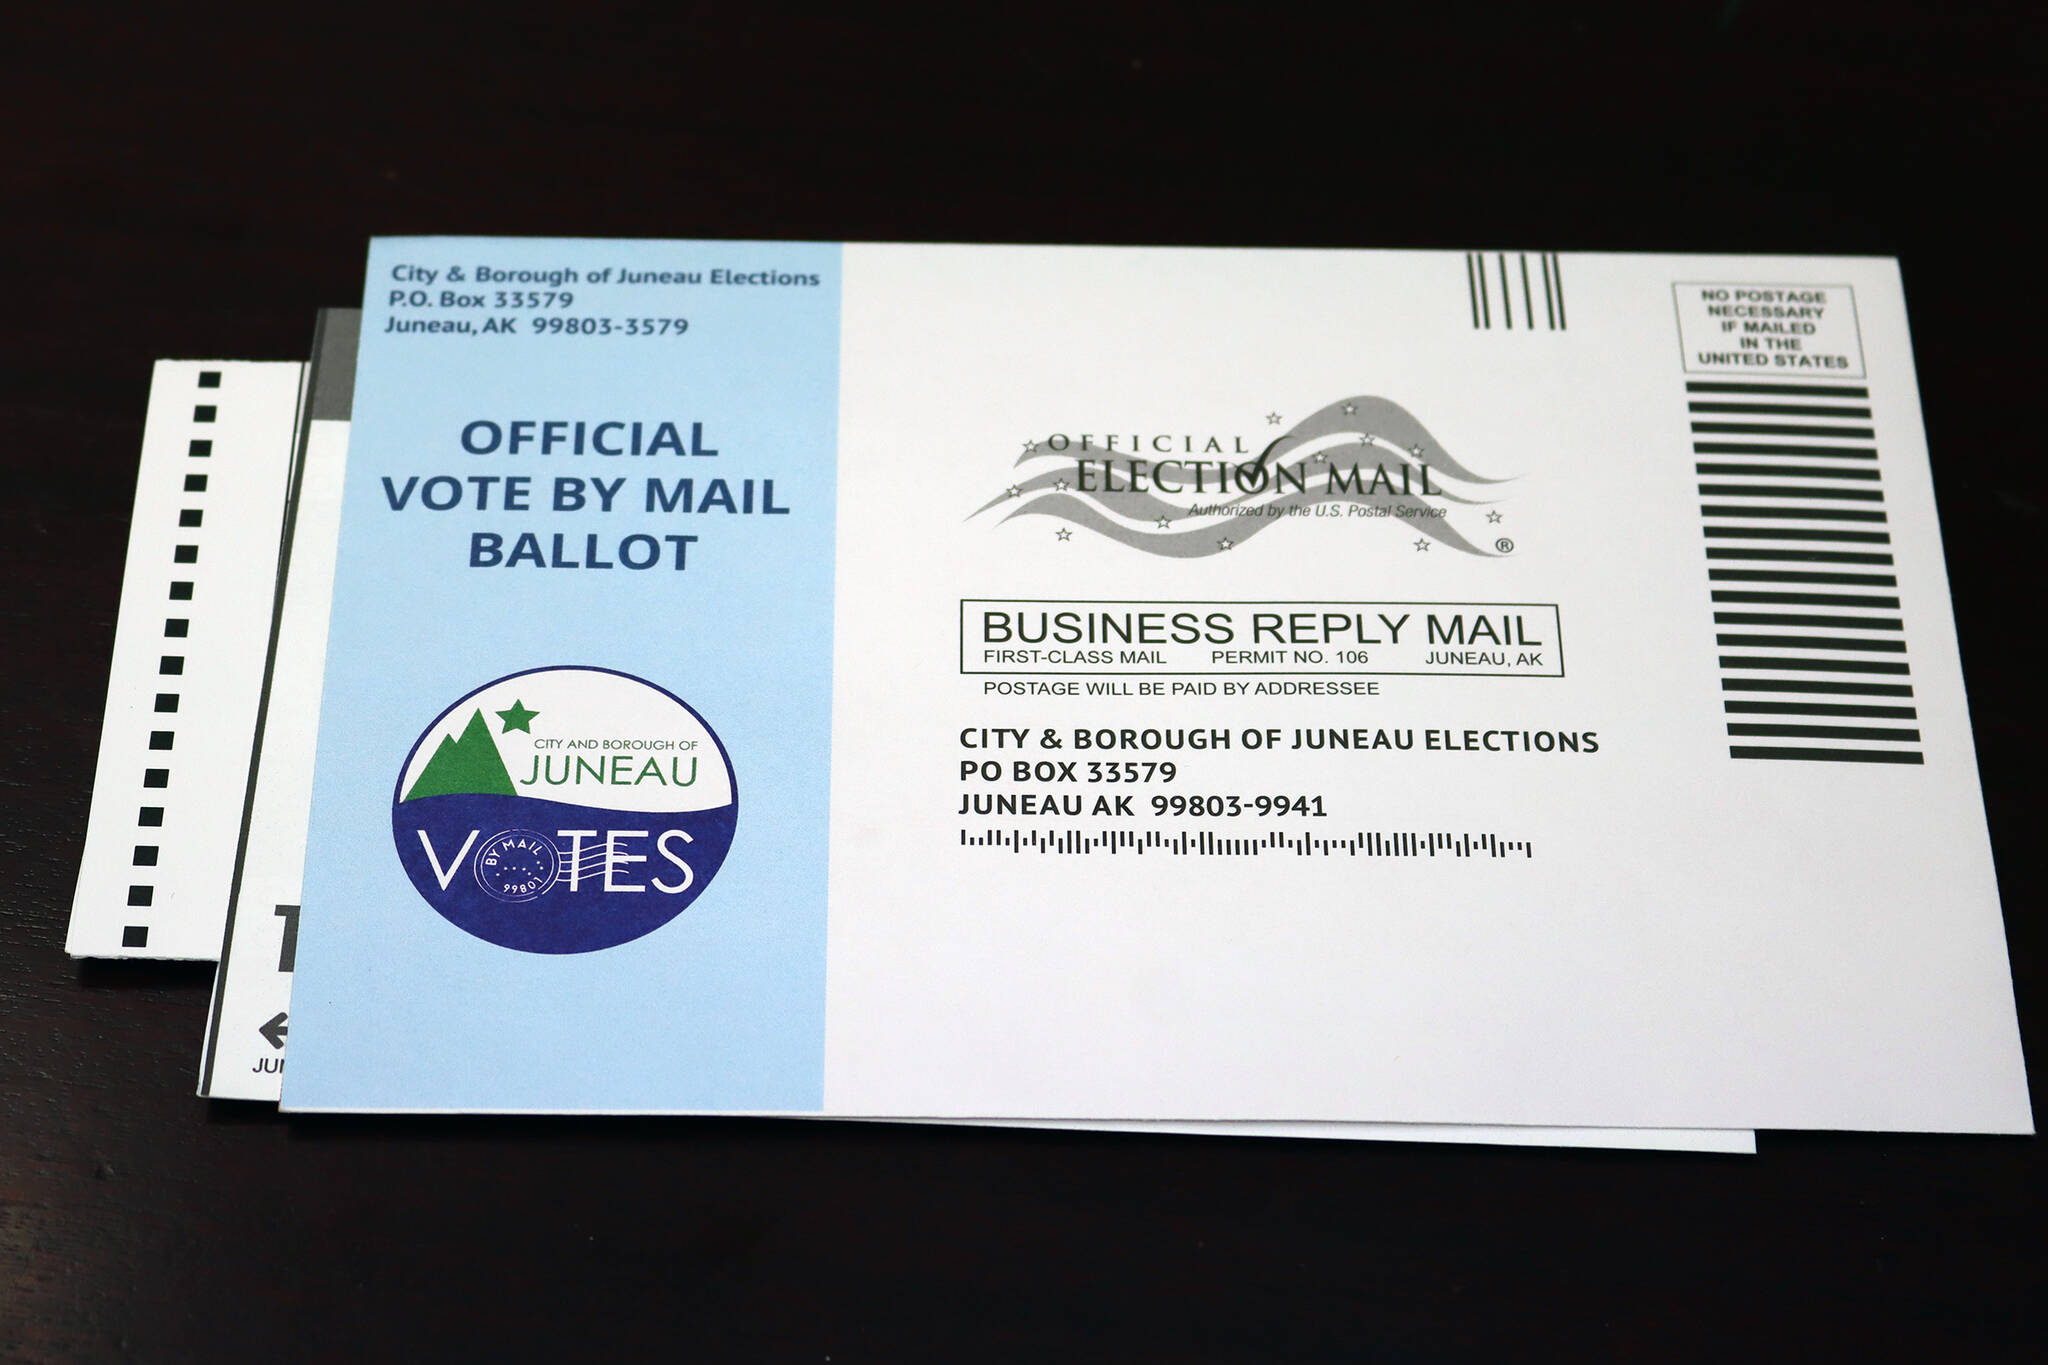 A ballot for the 2021 municipal election. On Wednesday, Will Muldoon entered the race for a seat on the Juneau Board of Public Education. He's joining the field of candidates as a write-in option, eight days after city officials mailed ballots to voters and 13 days before ballots are due back. (Ben Hohenstatt/Juneau Empire)